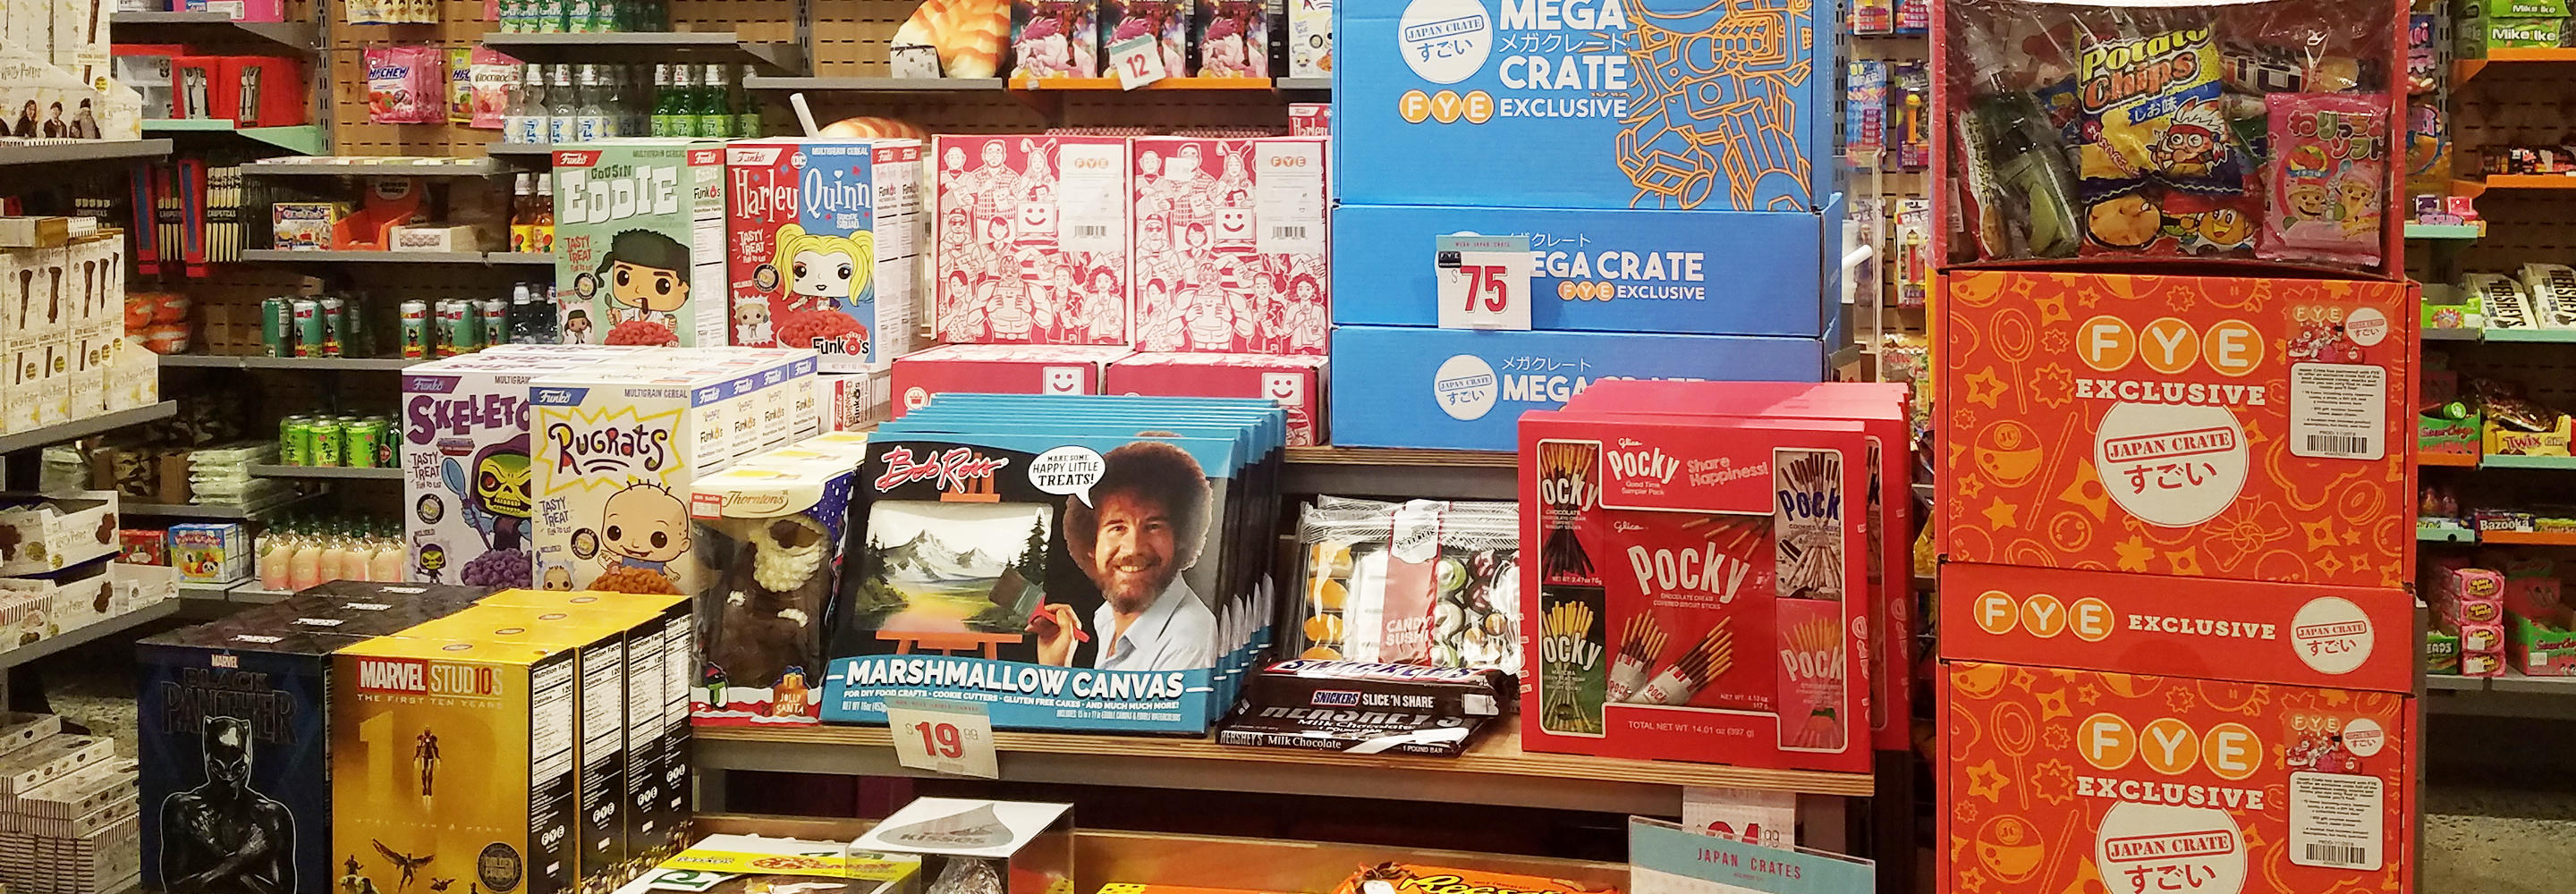 Candy assortments featuring Japan Crates in FYE